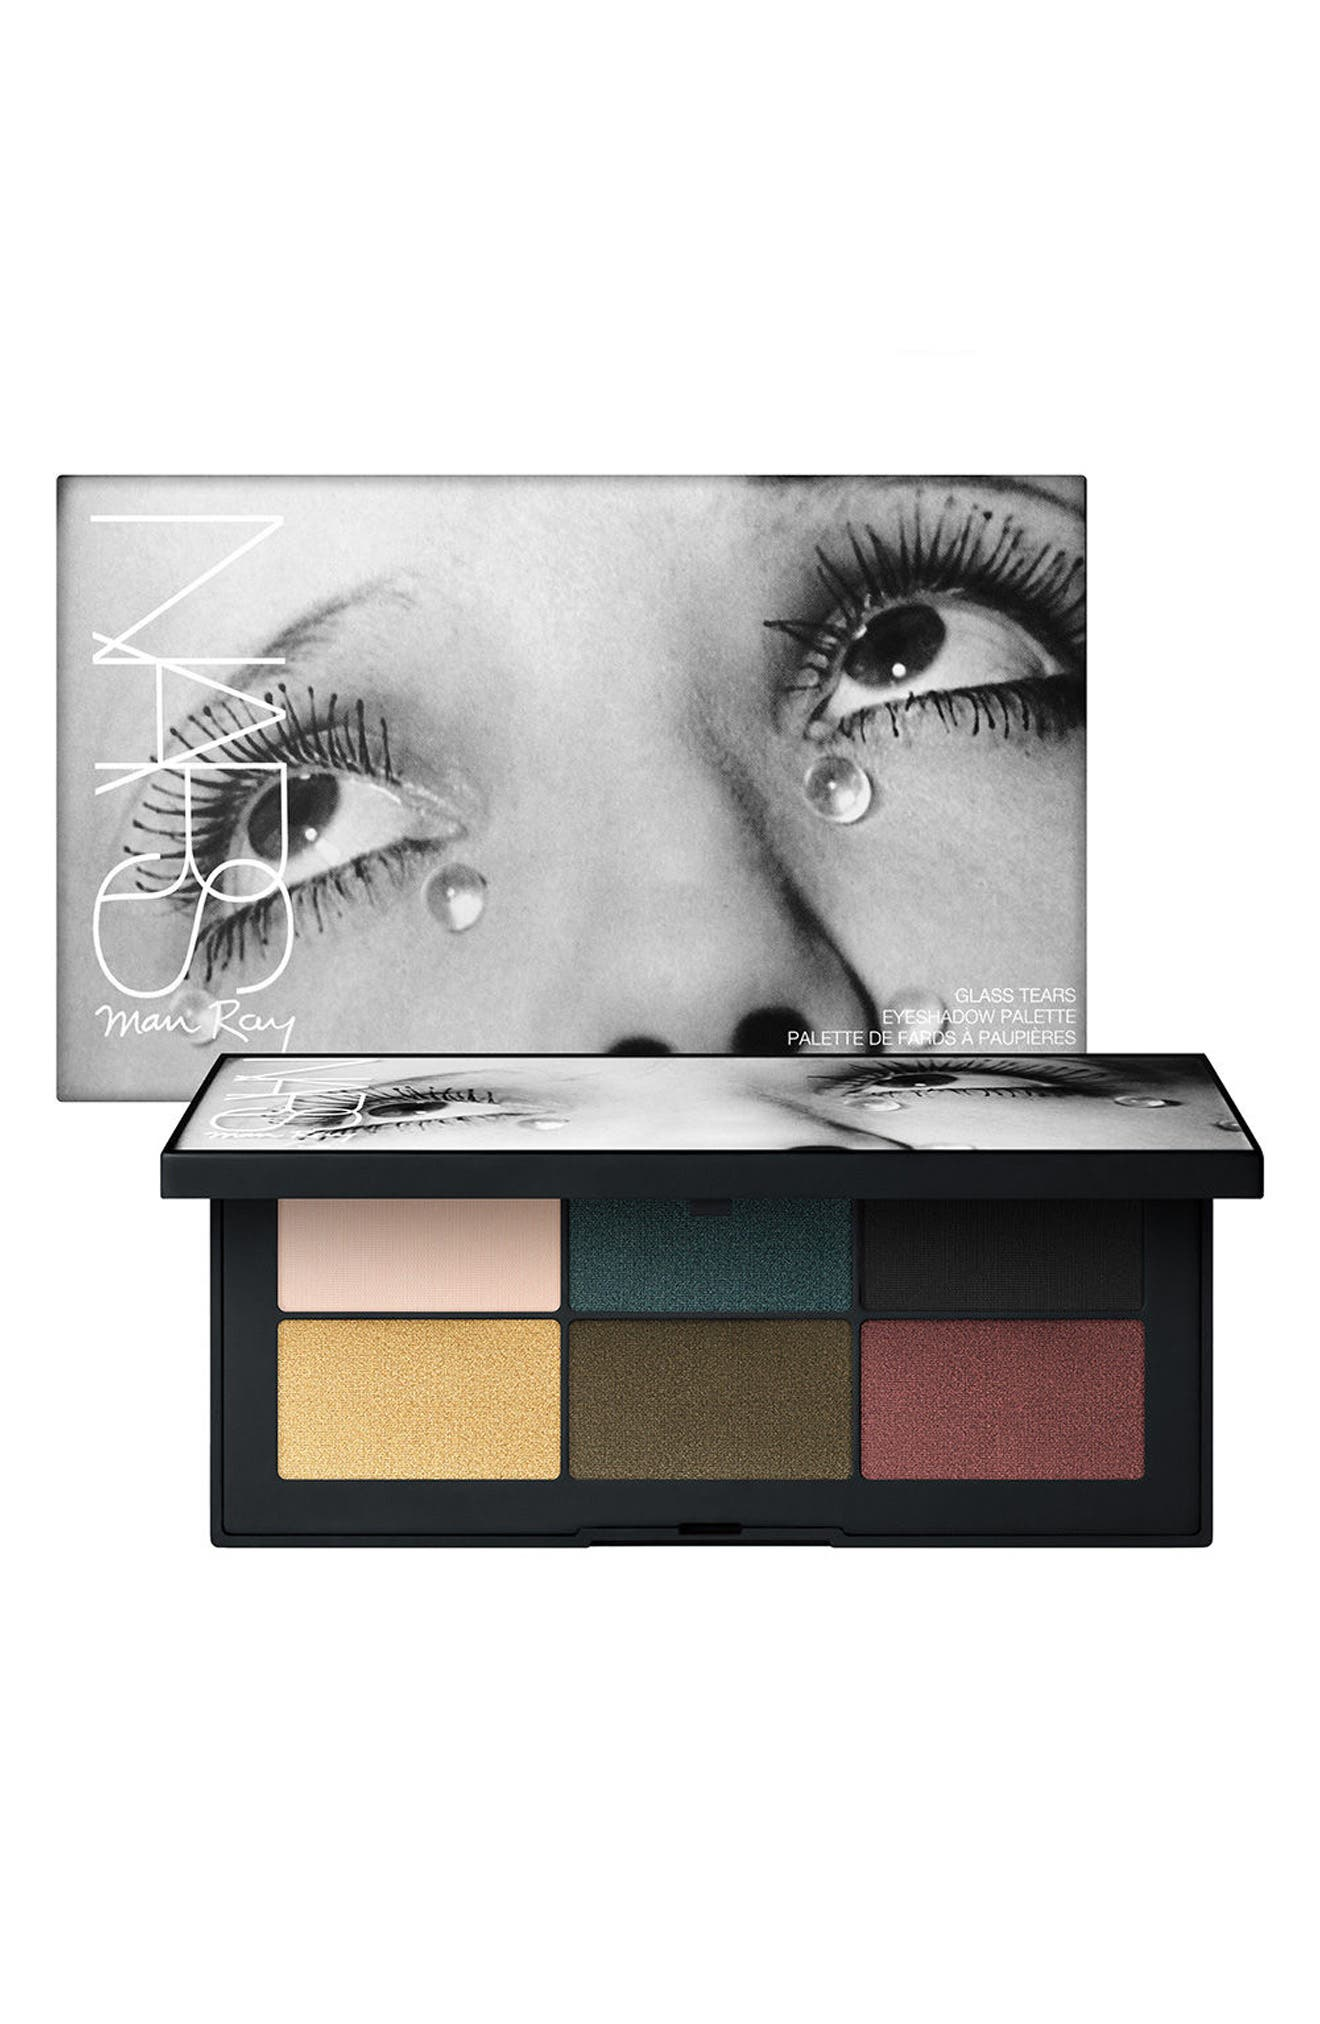 Main Image - NARS Man Ray Glass Tears Eyeshadow Palette ($155.68 Value)